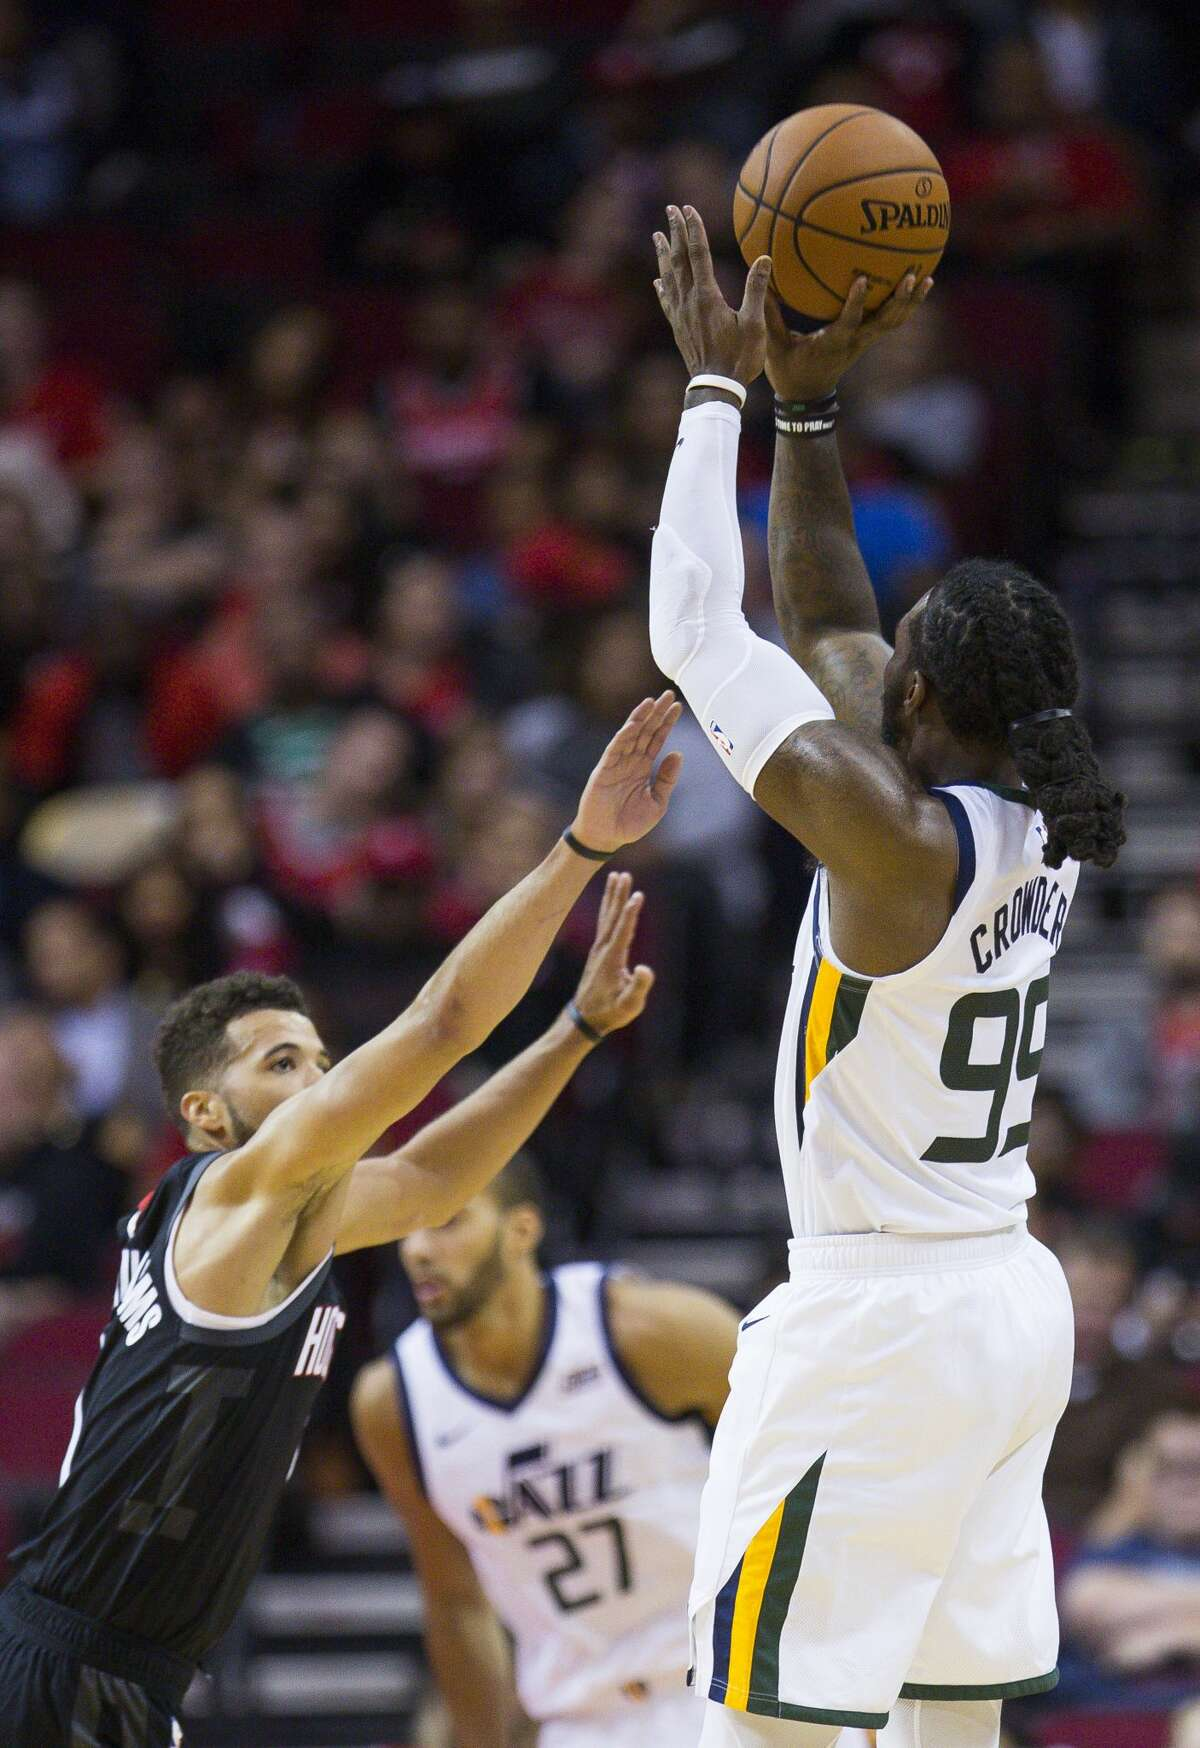 Utah Jazz forward Jae Crowder (99) shoots over Houston Rockets guard Michael Carter-Williams (1) during the second half of an NBA basketball game between the Houston Rockets and Utah Jazz, Wednesday, Oct. 24, 2018 in Houston.